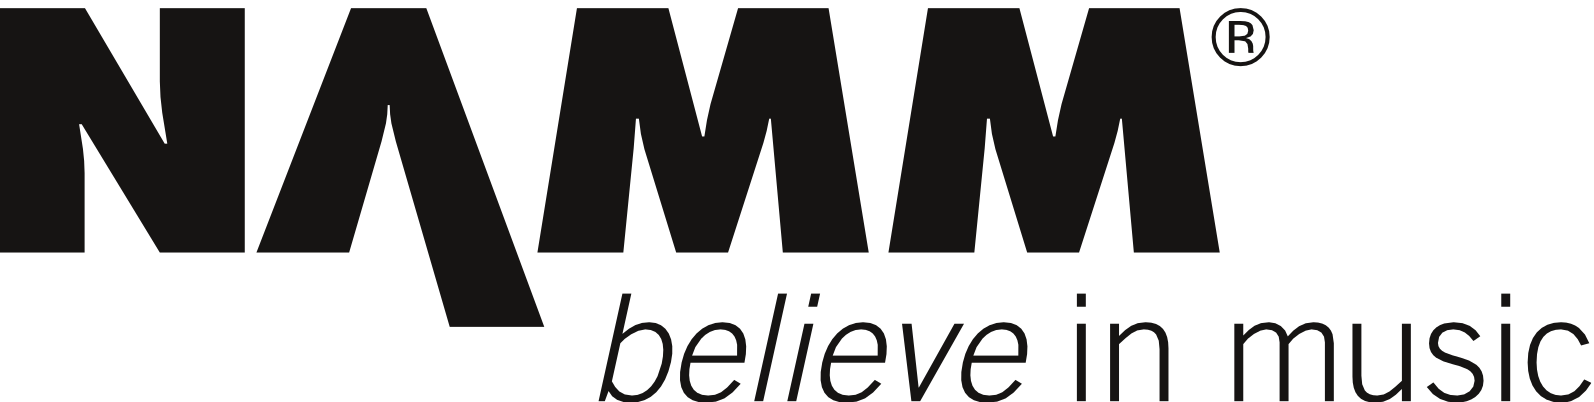 NAMM - believe in music